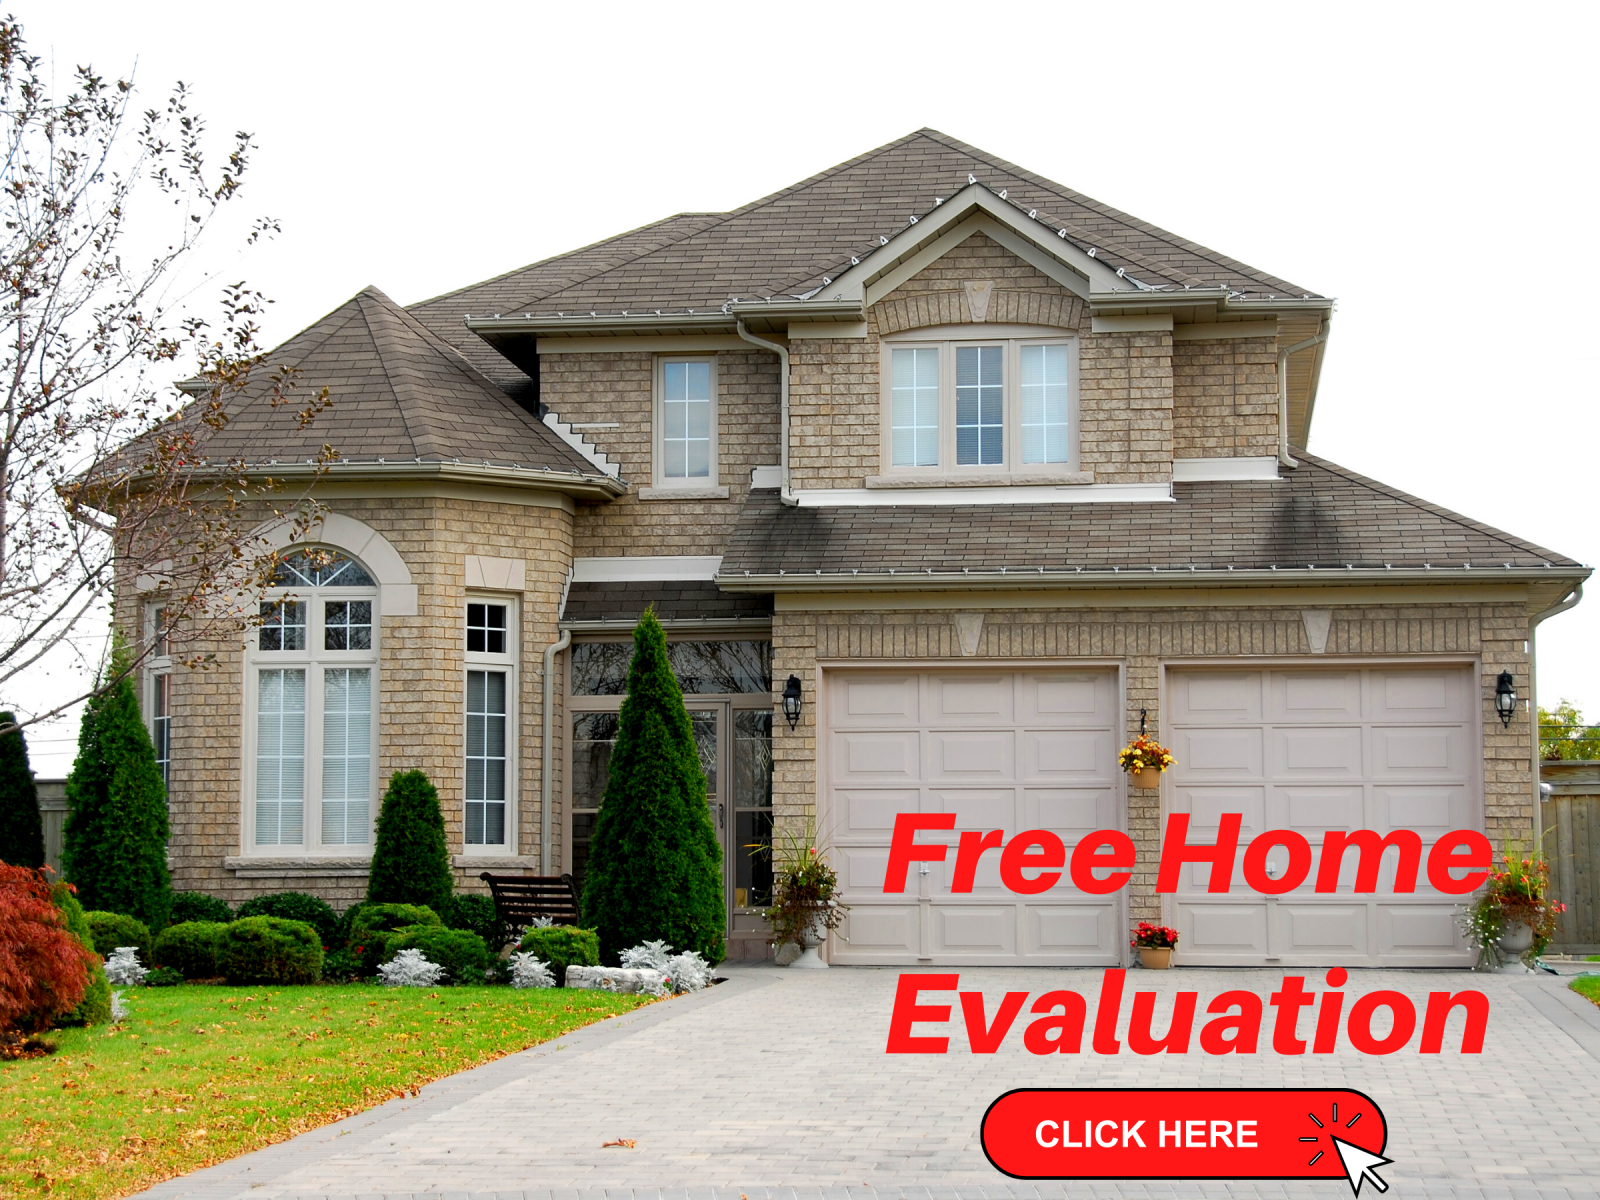 Burlington Free Home Evaluation